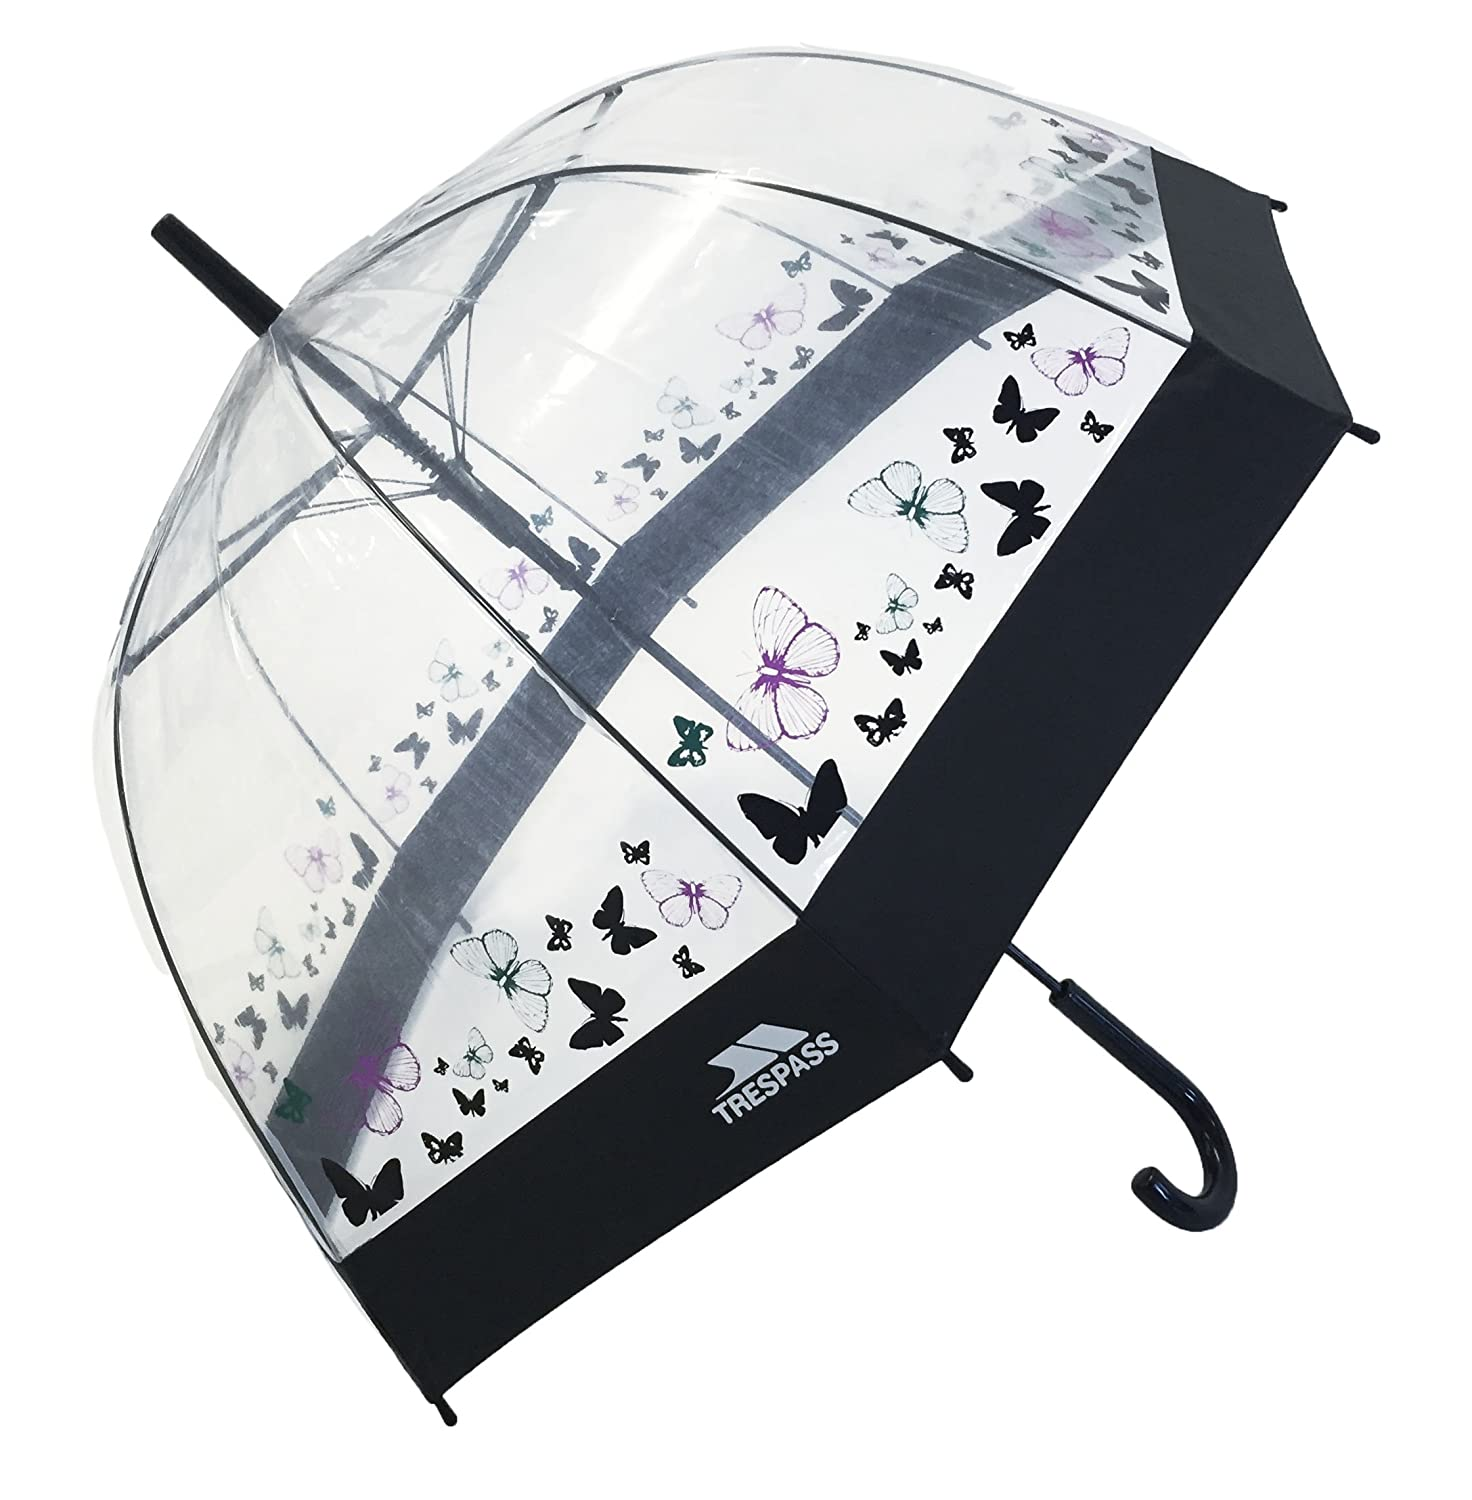 8685f71749da0 Trespass Papillon - Parapluie transparent - Adulte